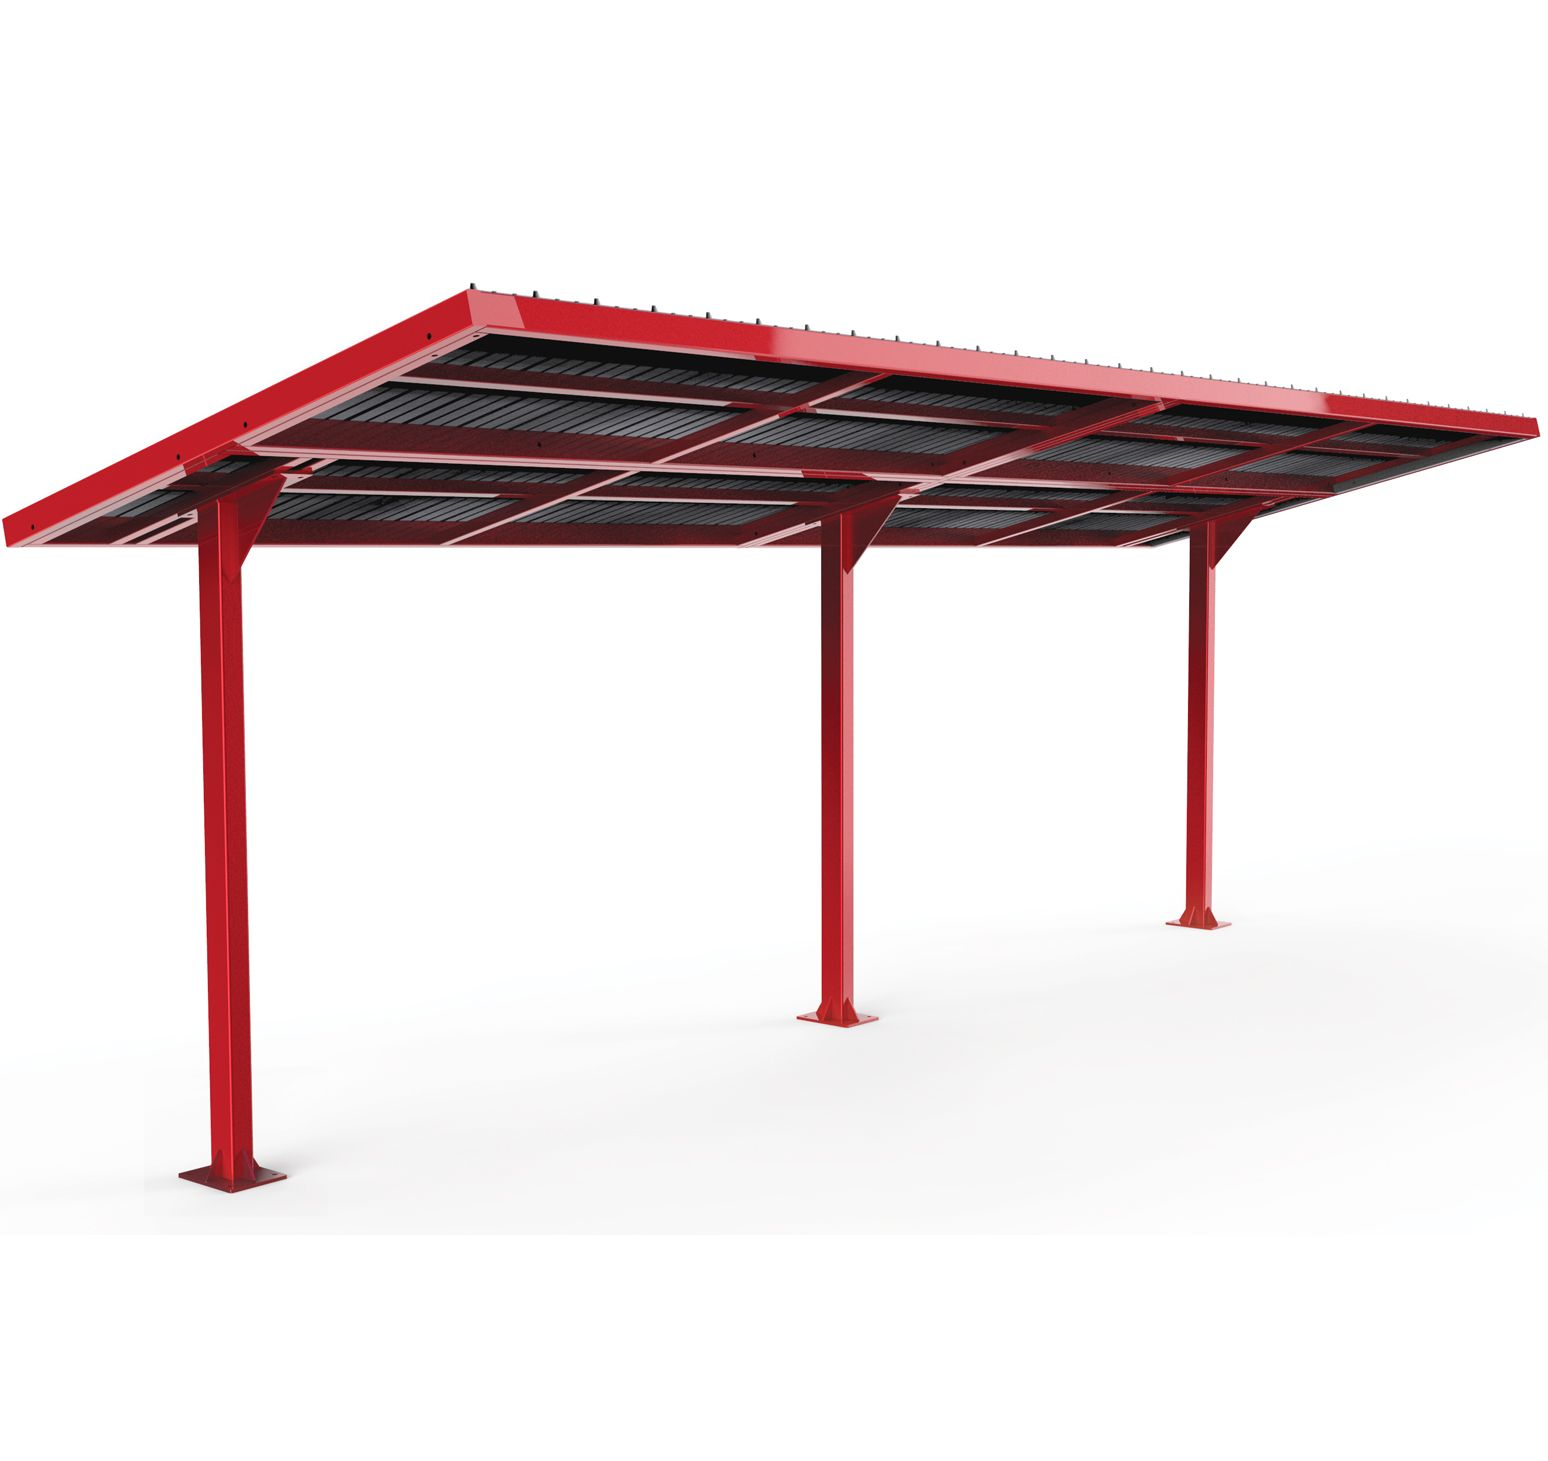 Gill Cantilevered Dugouts